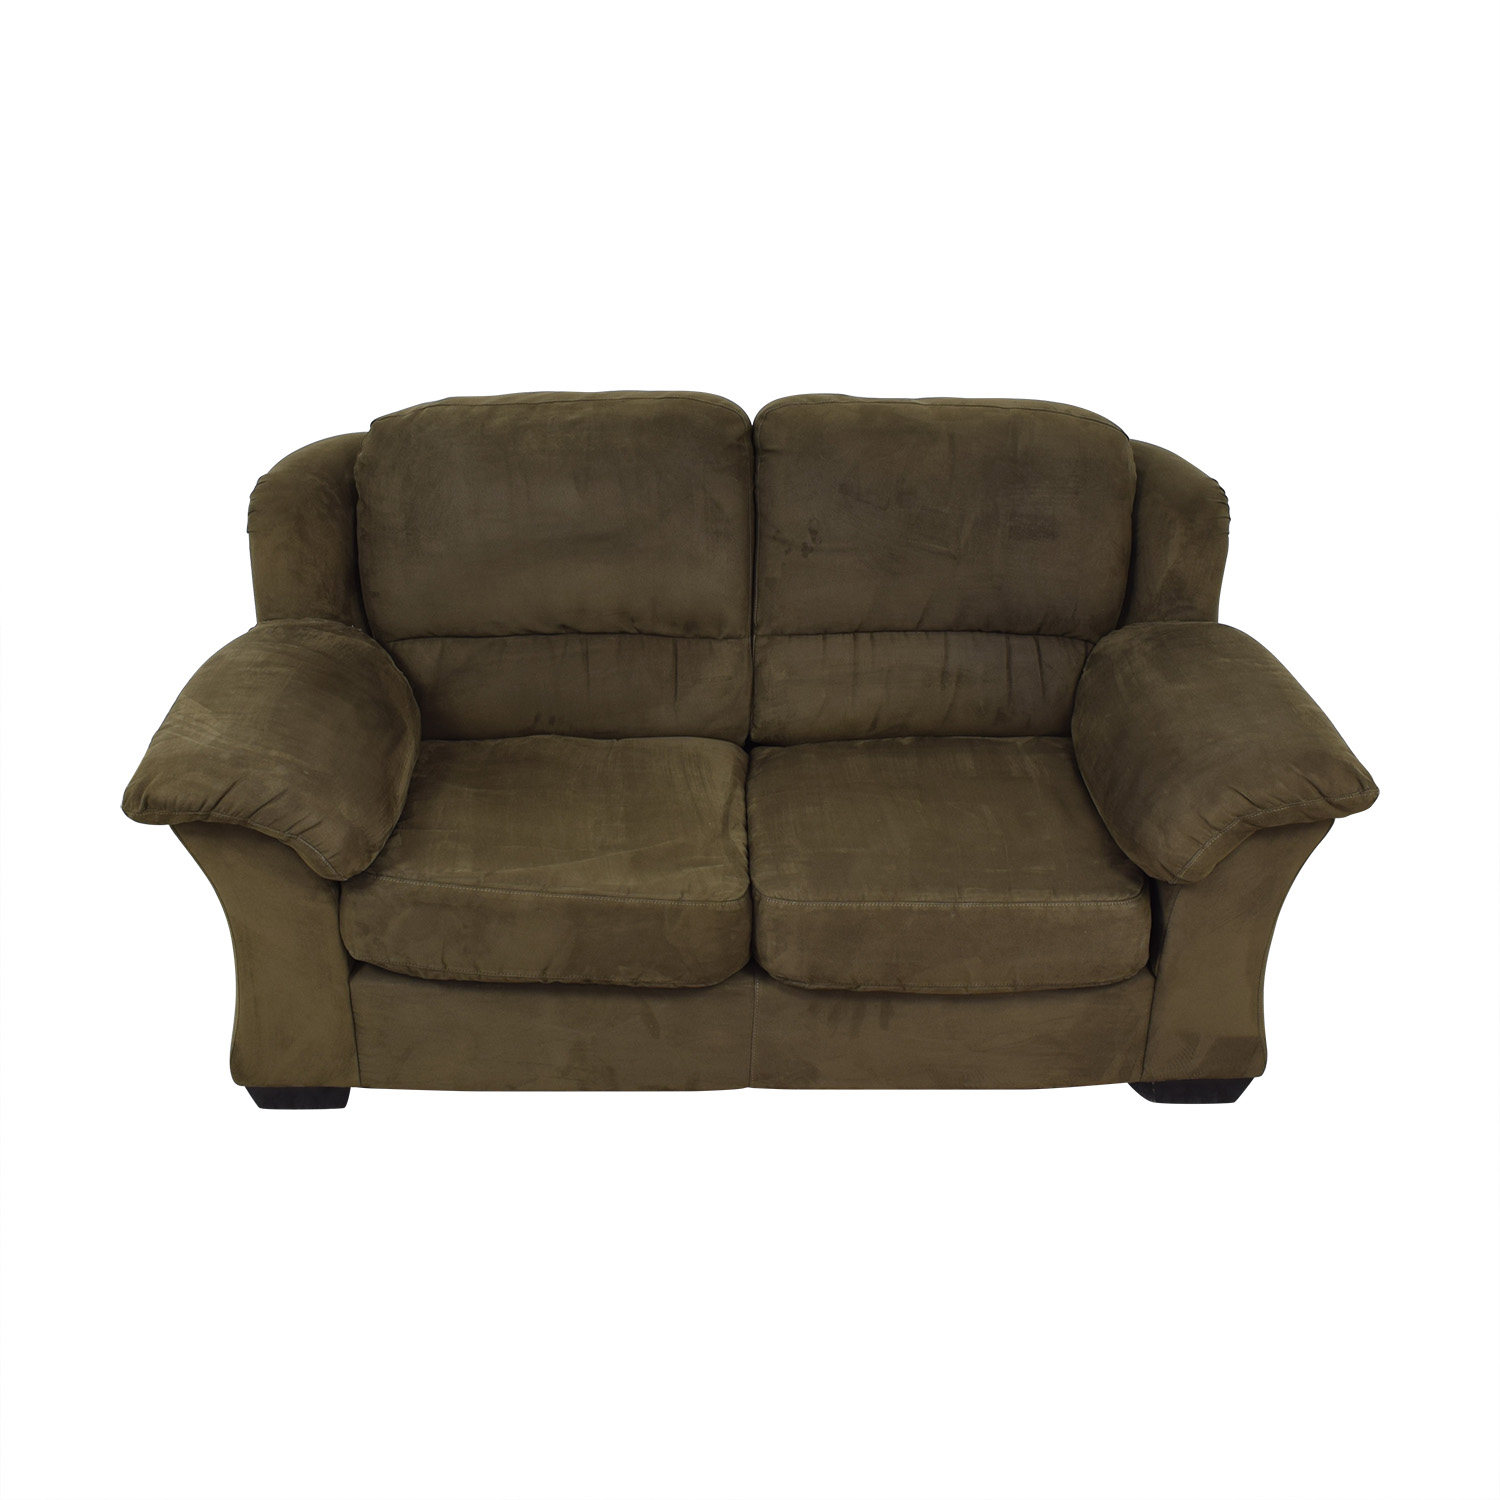 HM Richards Furniture HM Richards Furniture Loveseat on sale